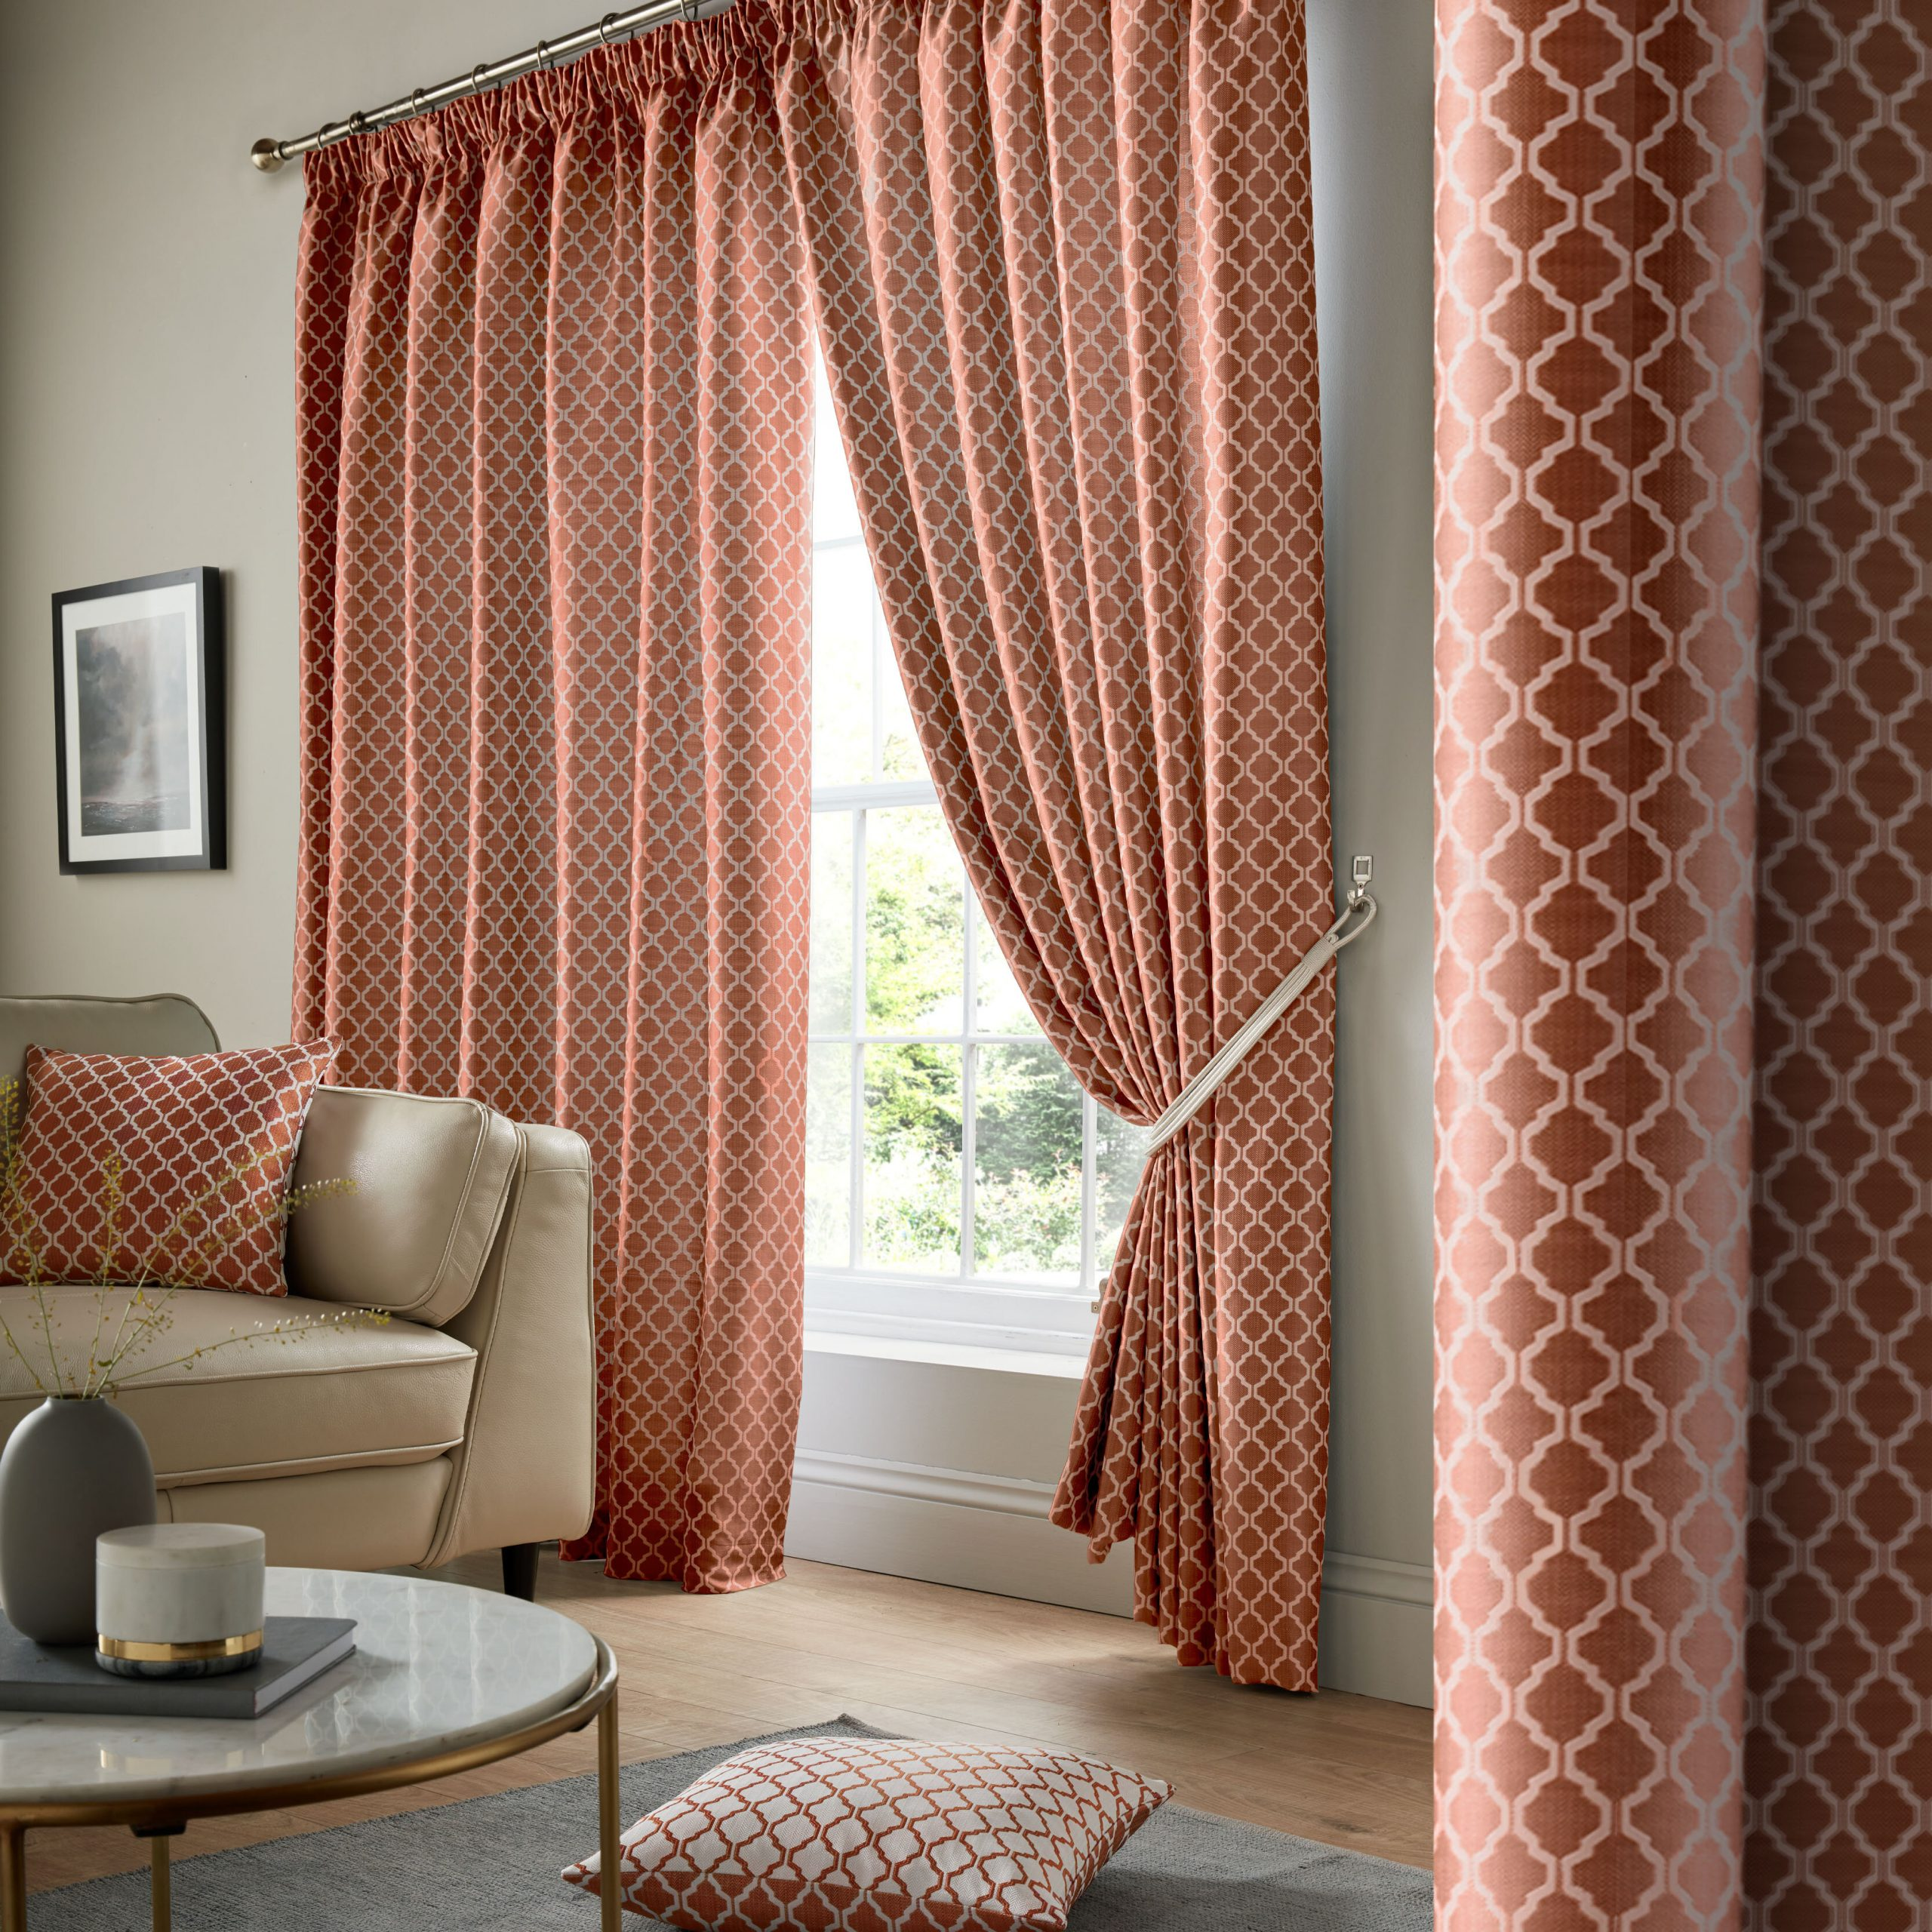 curtains shop Leeds, What to Know About the Special Curtains Shop Leeds?